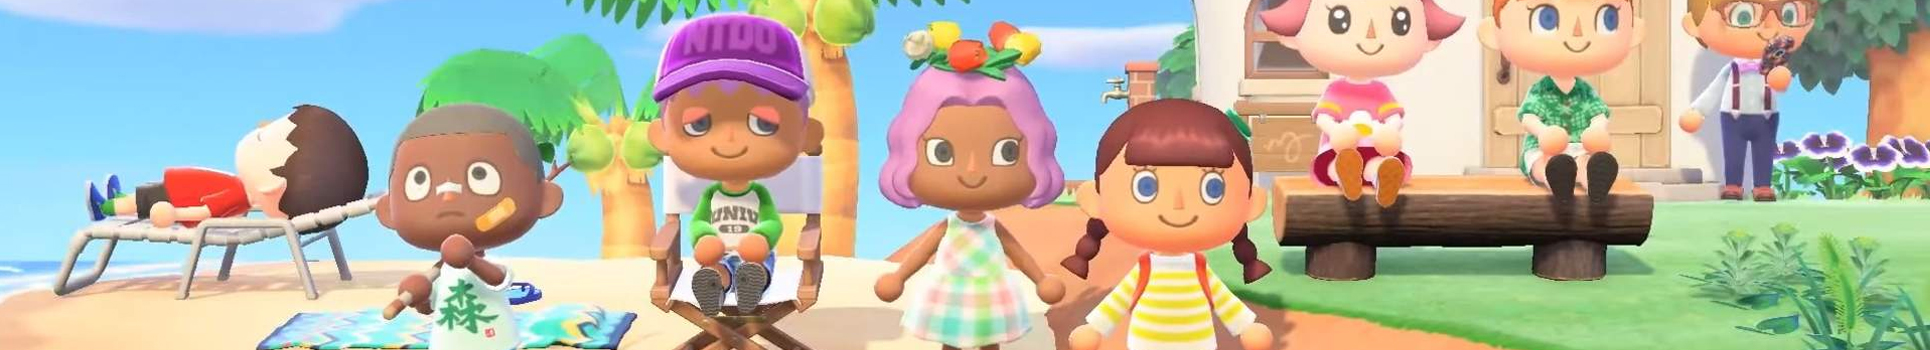 animal crossing new horizons clothes options